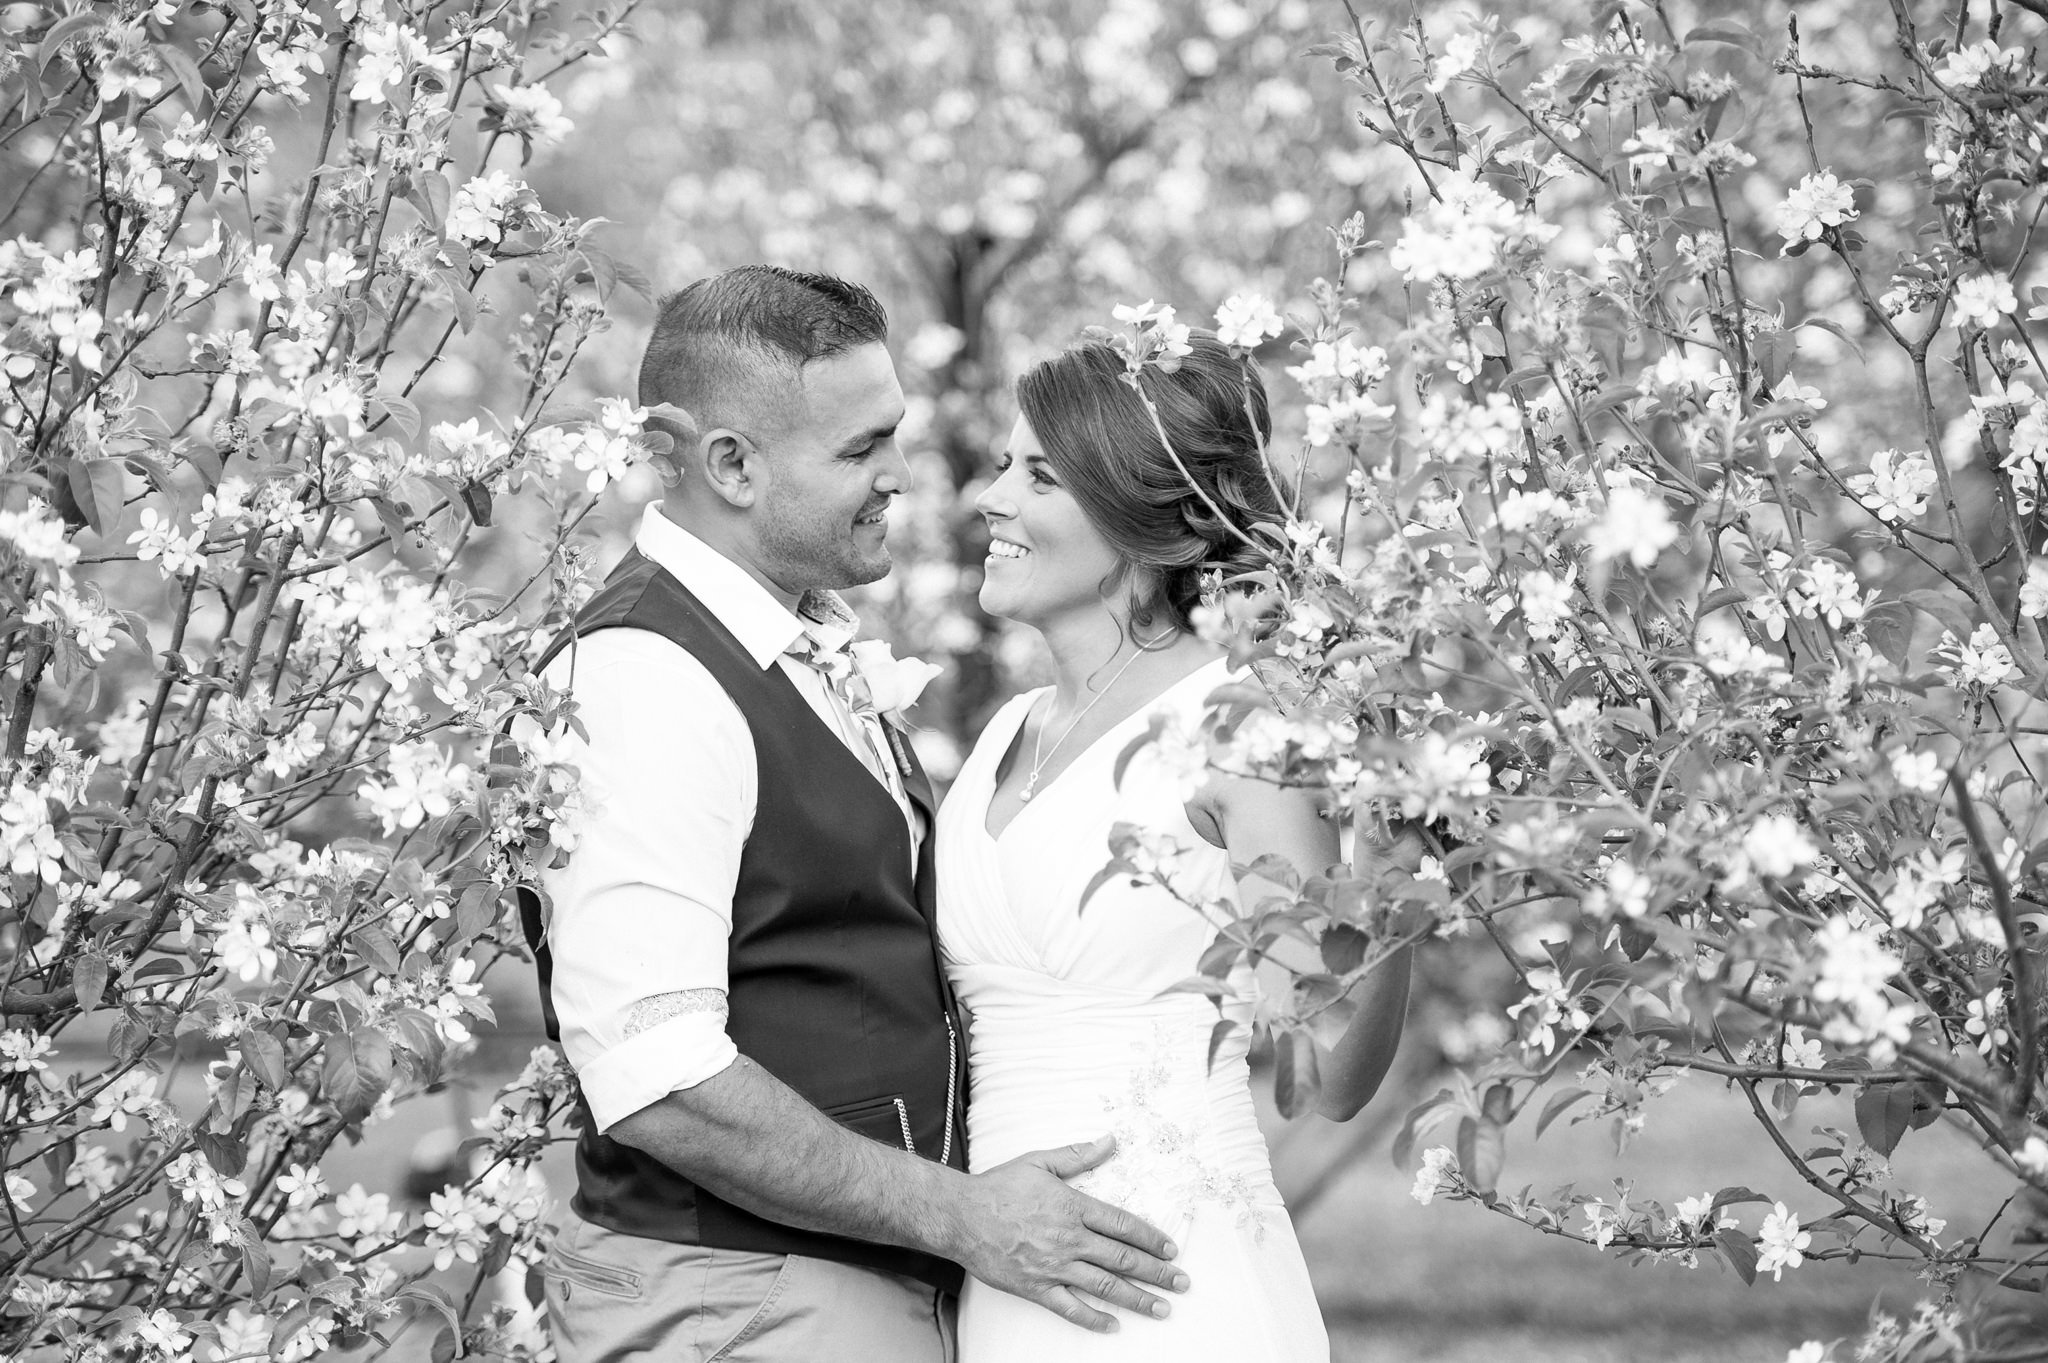 newlyweds in the appleorchard